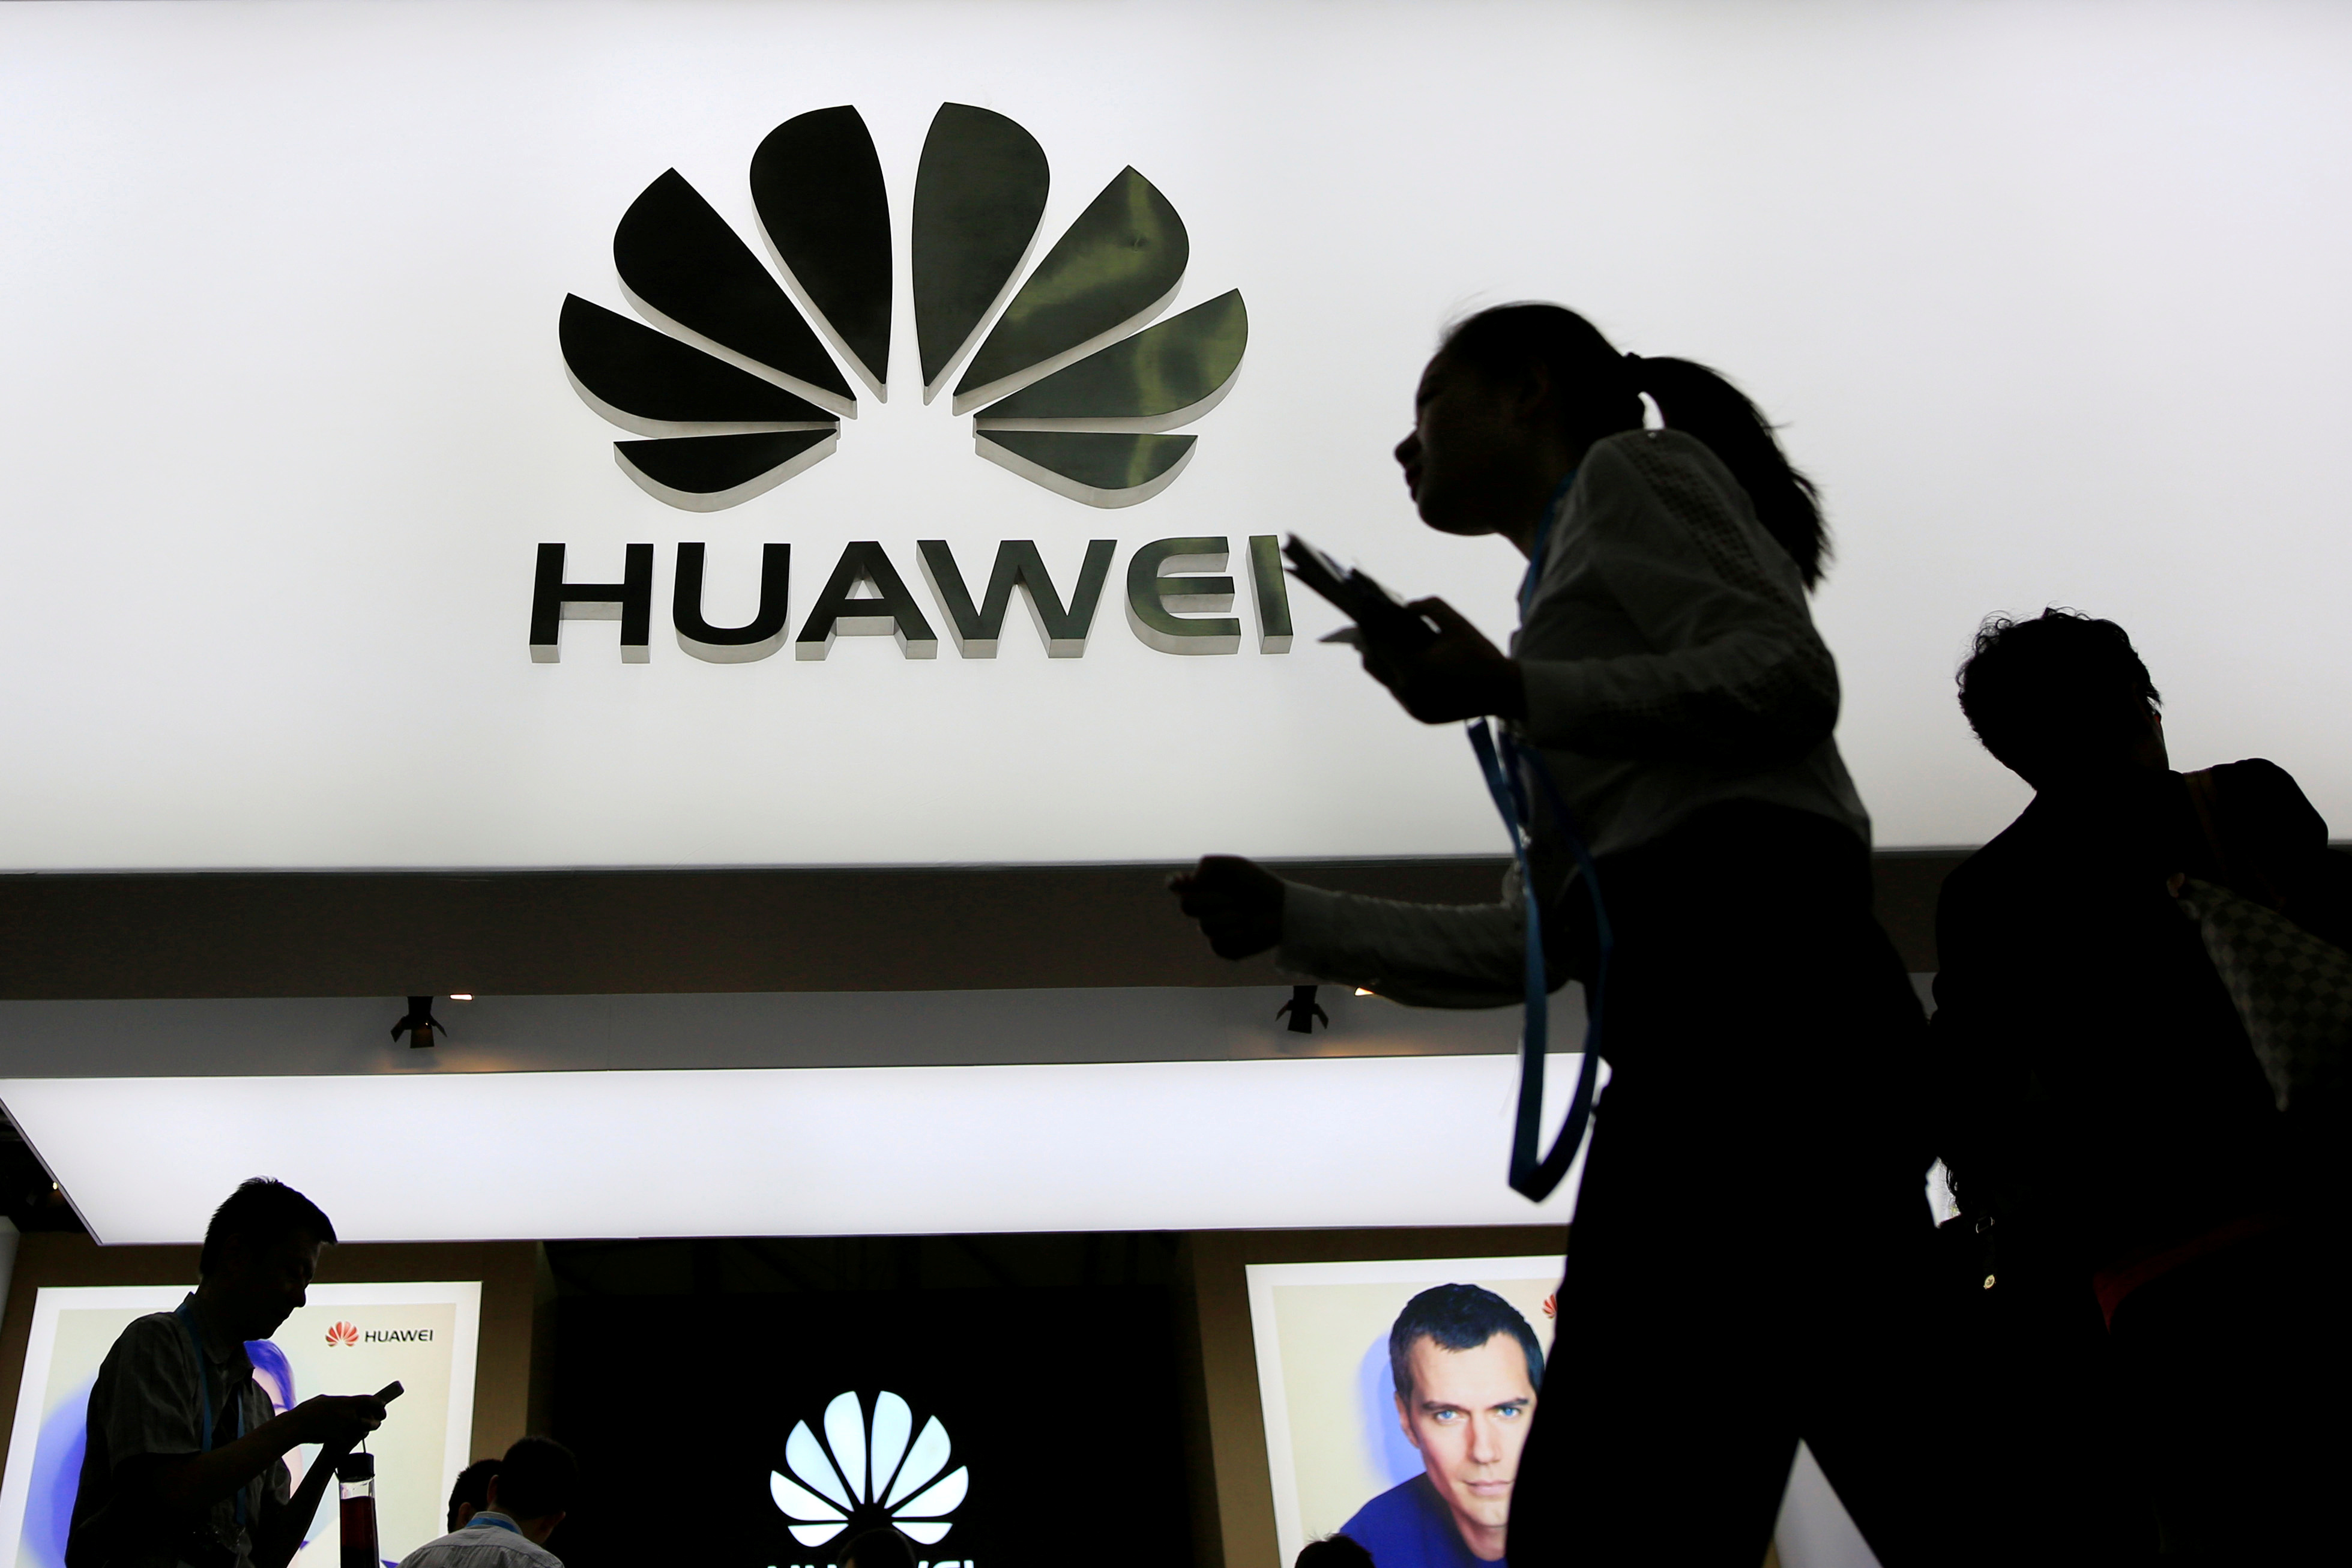 Australian Cyber Officials Warned India Against Using Huawei: Newspapers